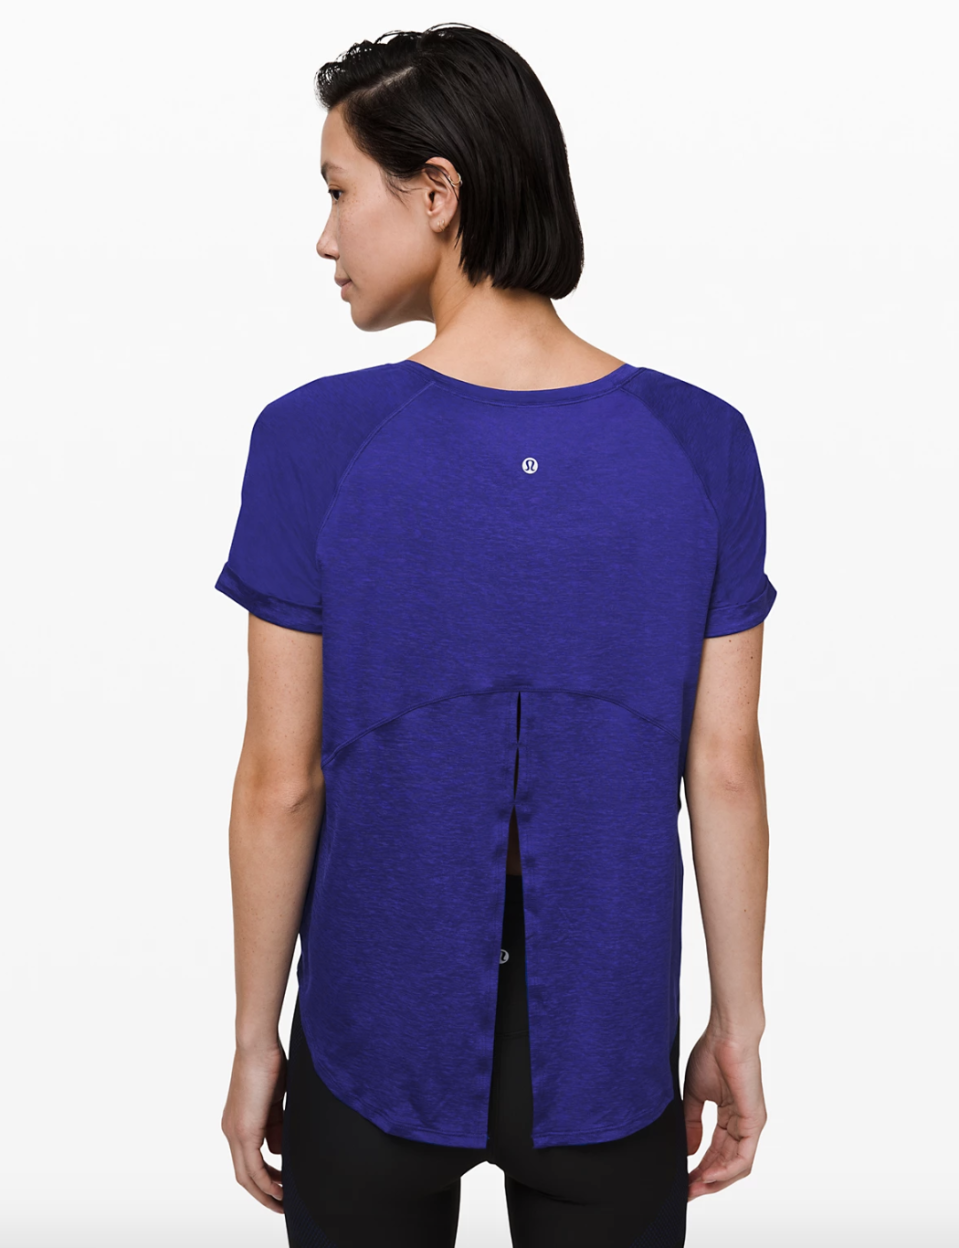 Open Up Tie Back Tee in larkspur